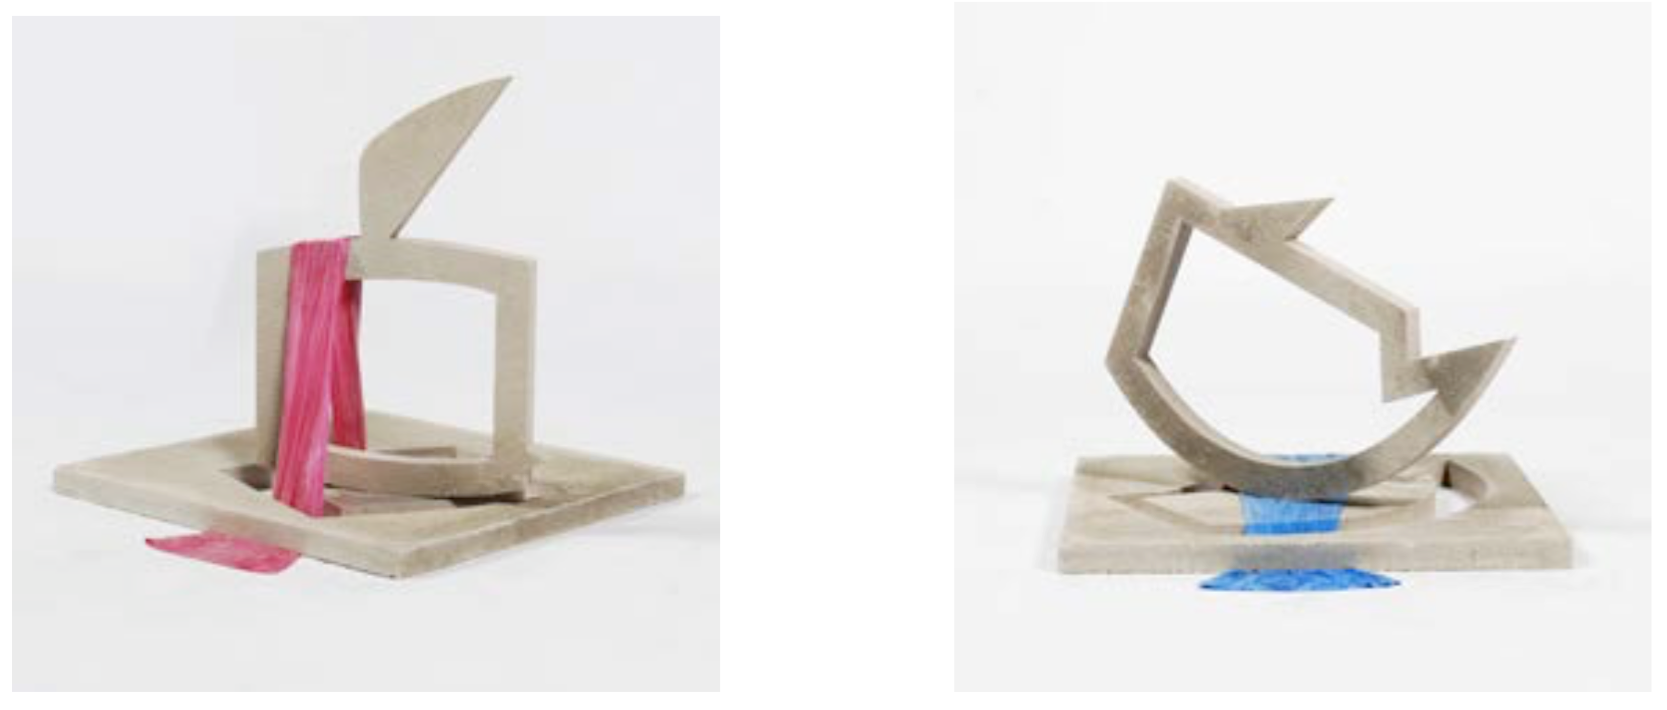 Examples of completed artworks by Colette GrifXin, using Evoshape & Water Jet